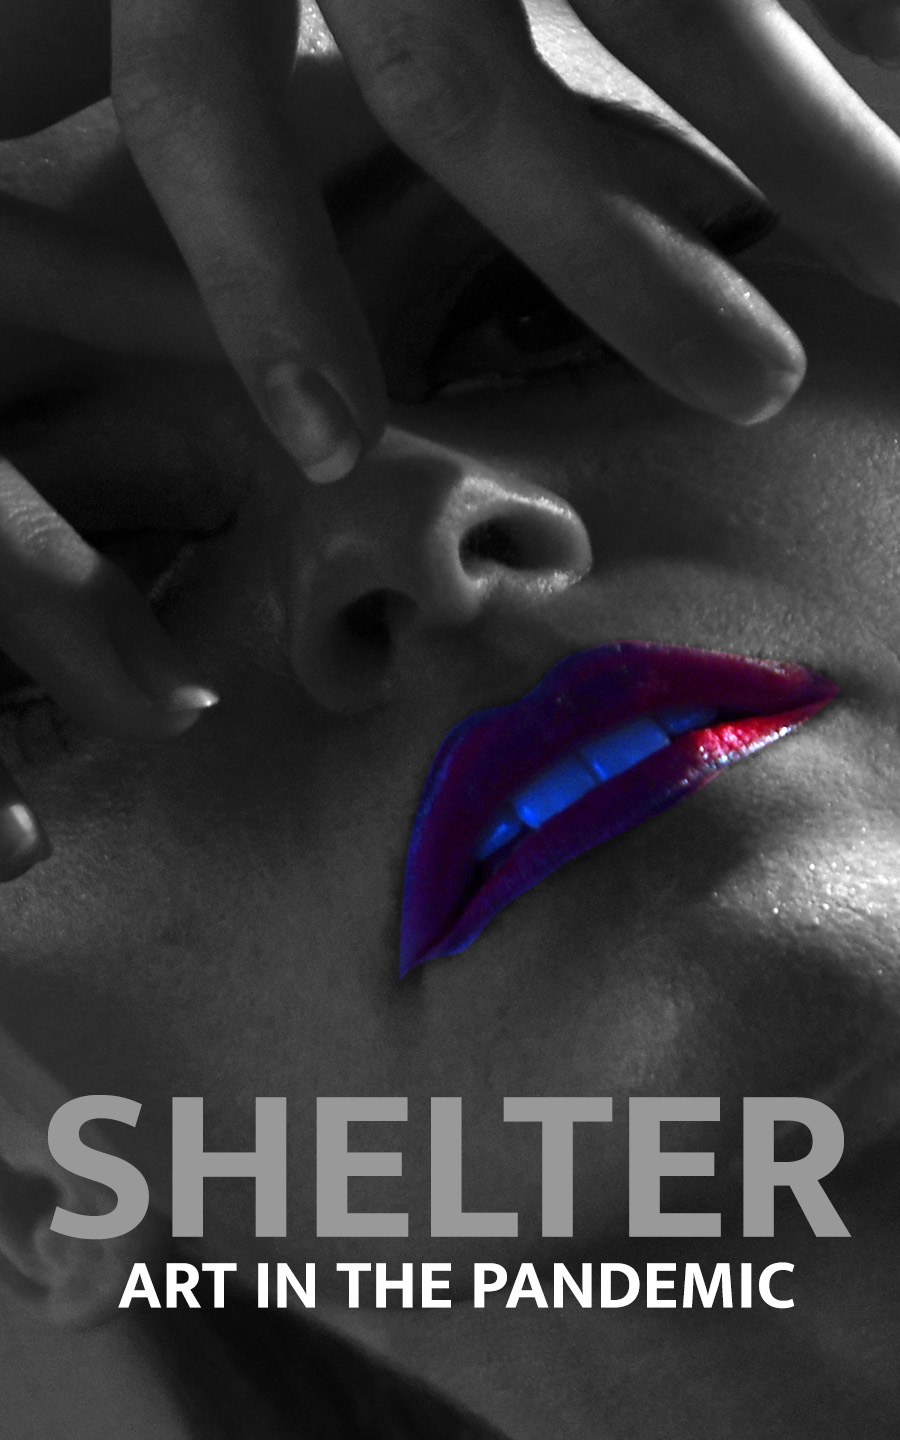 SHELTER - Art in the pandemic